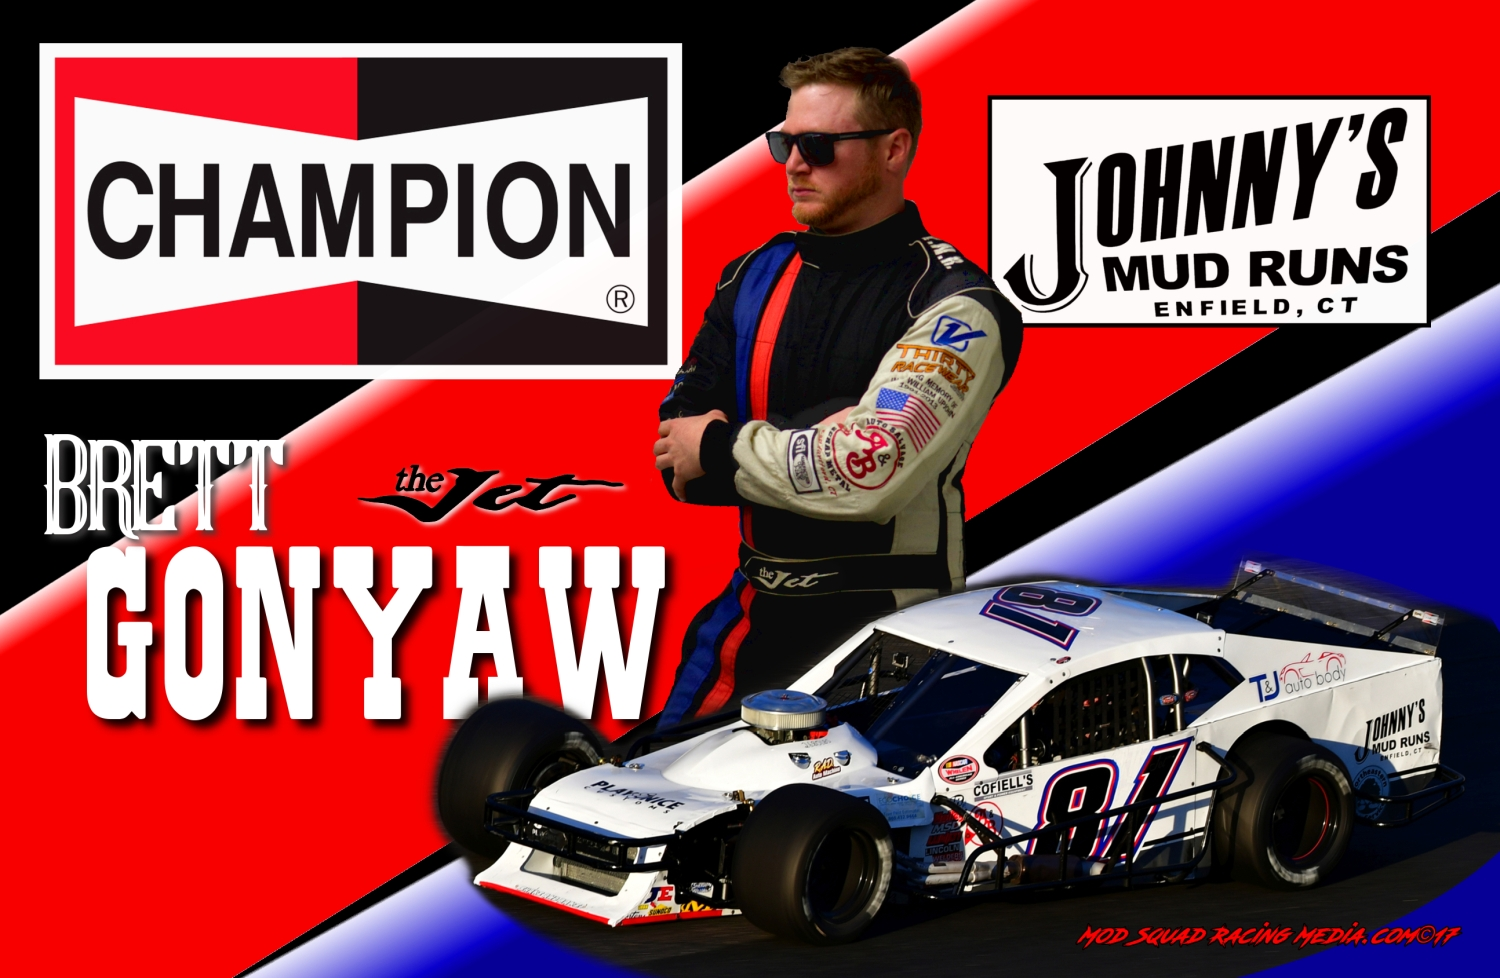 Gonyaw Front of Hero Card